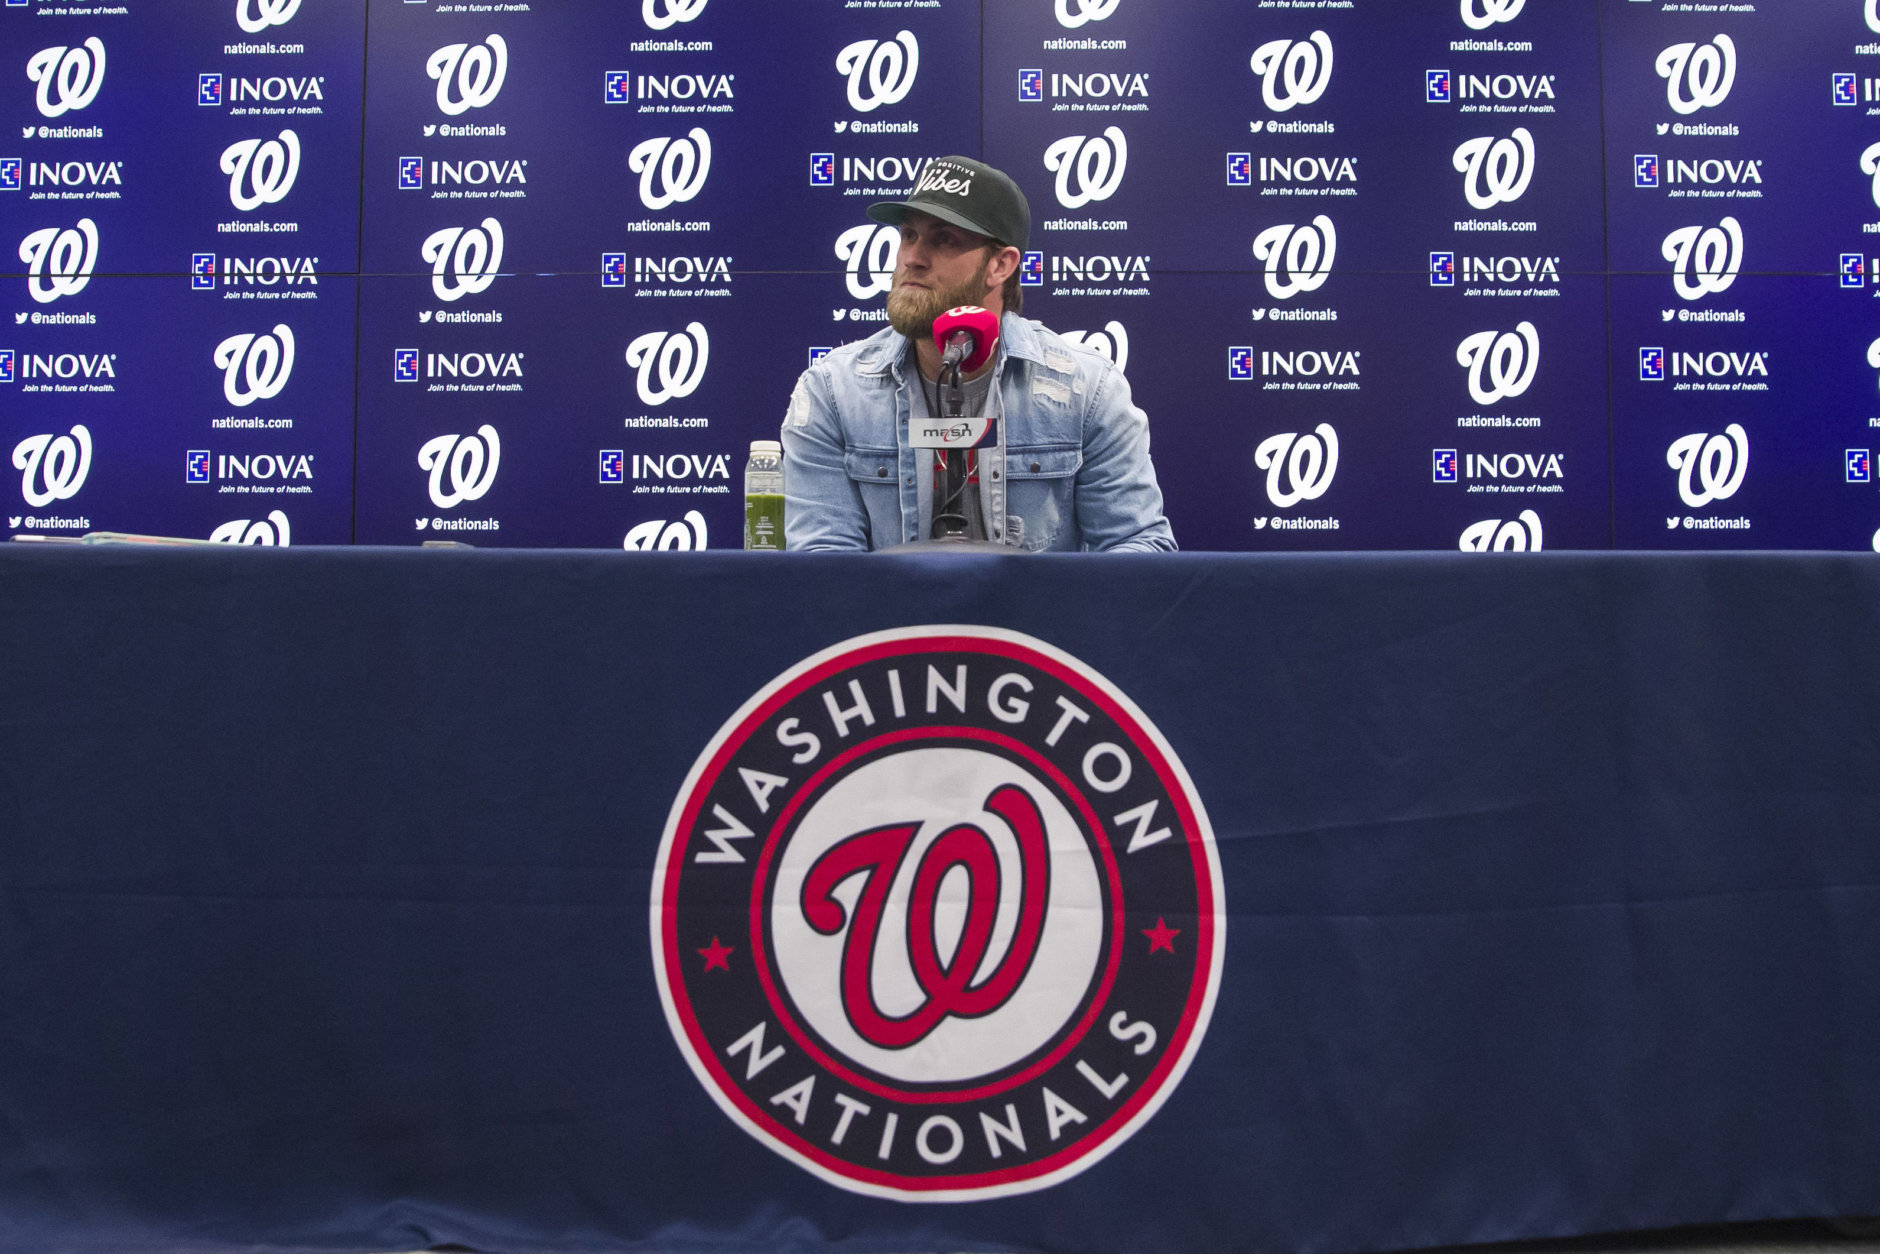 Philadelphia Phillies' Bryce Harper pauses while speaking during a news conference before a baseball game against the Washington Nationals at Nationals Park, Tuesday, April 2, 2019, in Washington. (AP Photo/Alex Brandon)